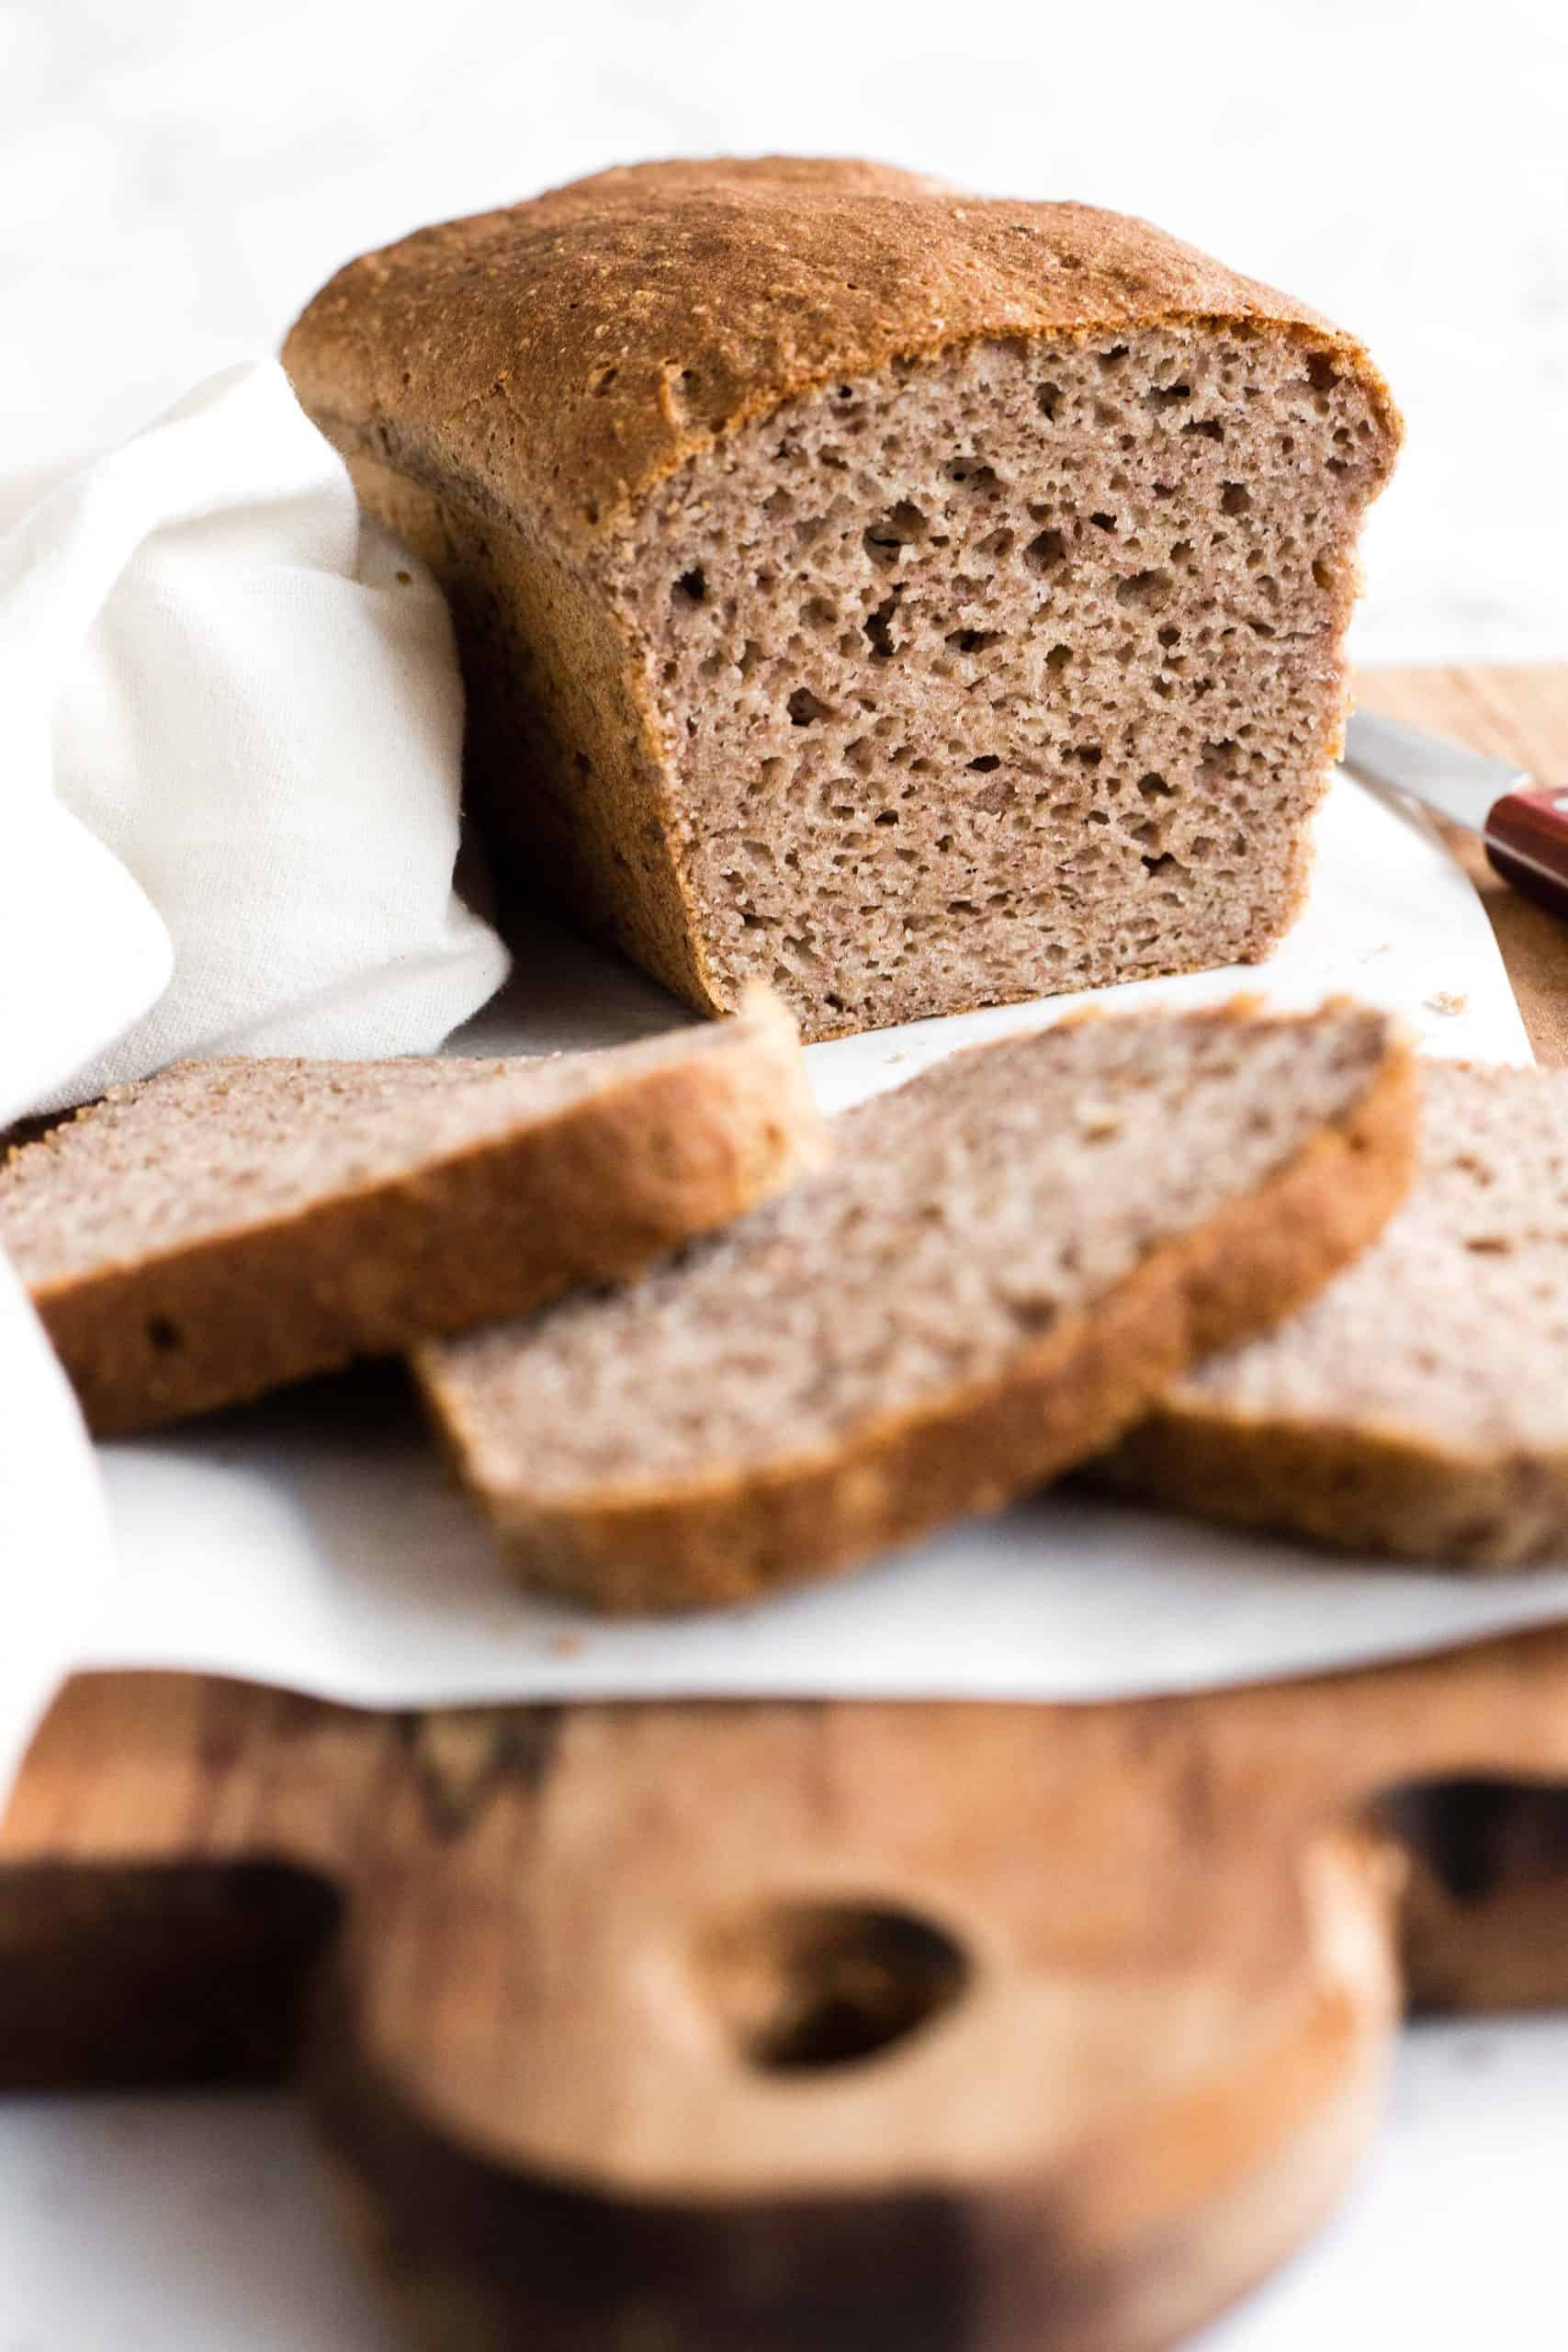 Sliced loaf of buckwheat bread on parchment-lined board.